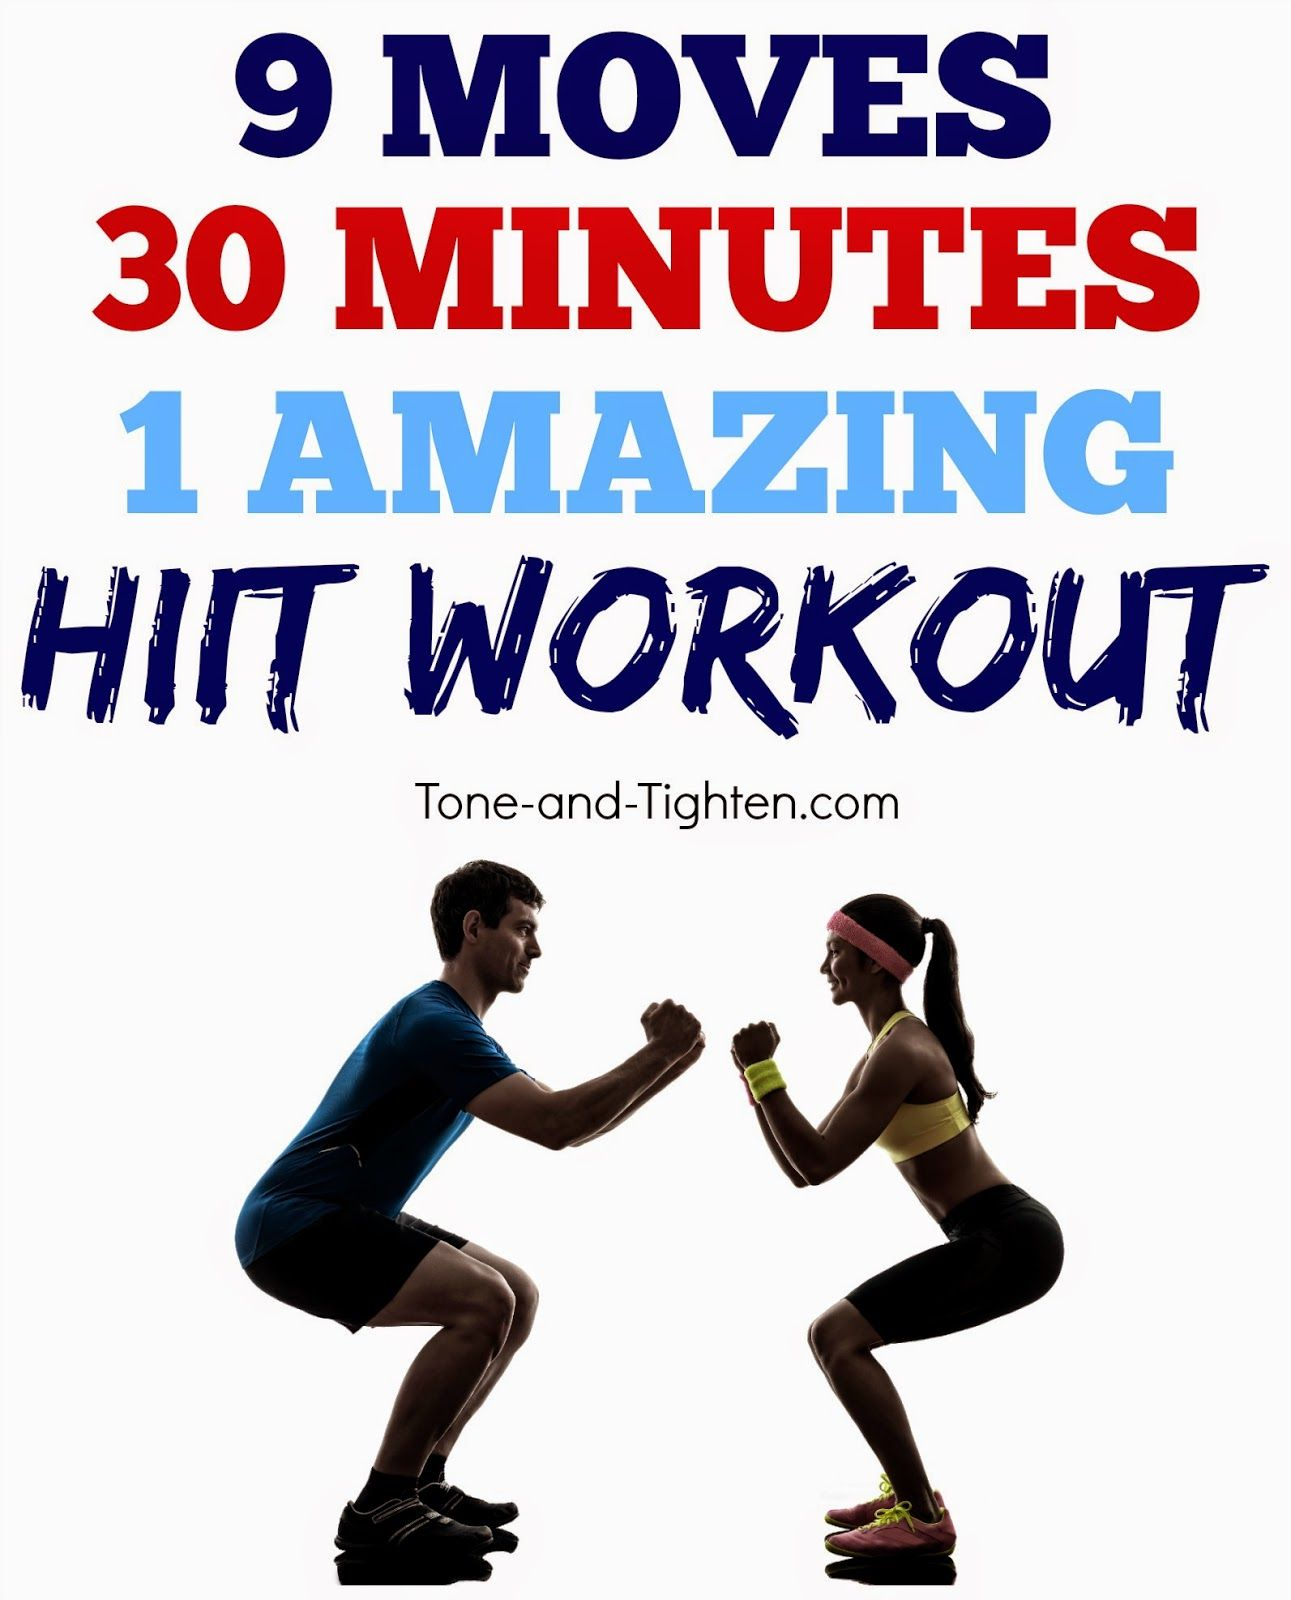 Amazing 30-minute HIIT workout you can do at home! Burns 300+ calories! #workout from Tone-and-Tighten.com